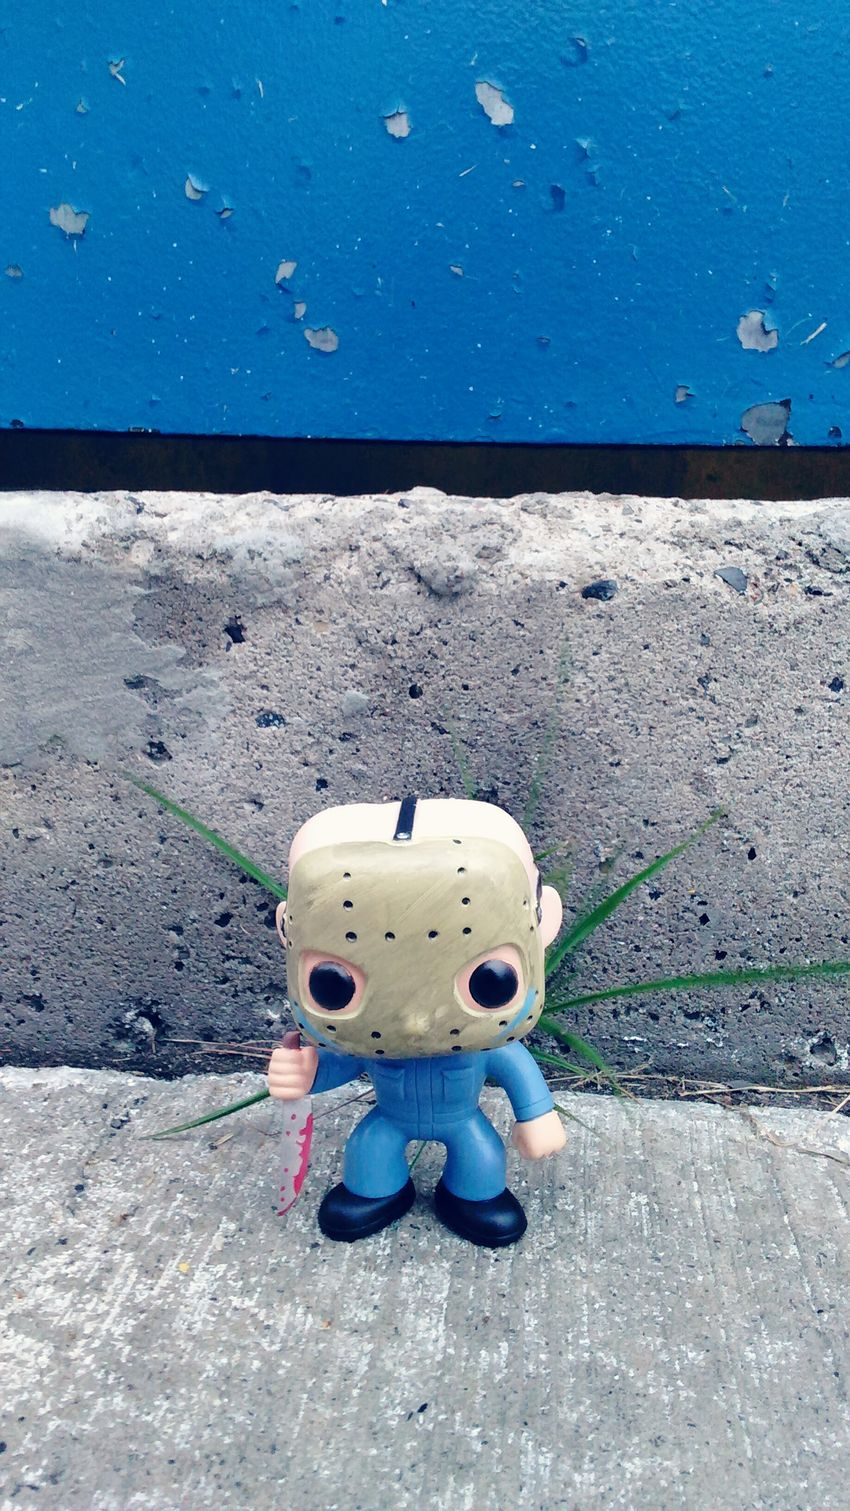 Jasonvorhees Fridaythe13th In Front Of Still Life Funkopopvinyl Amazing Vibrant Color Jasonvoorhees Jasonvoorhes Bluesuit Exclusive  Friday The 13th Popfunko Fun Knife Bestever Close-up Front View Concrete Day Outdoors Concrete Jungle Bluedoor Creativity Tranquil Scene